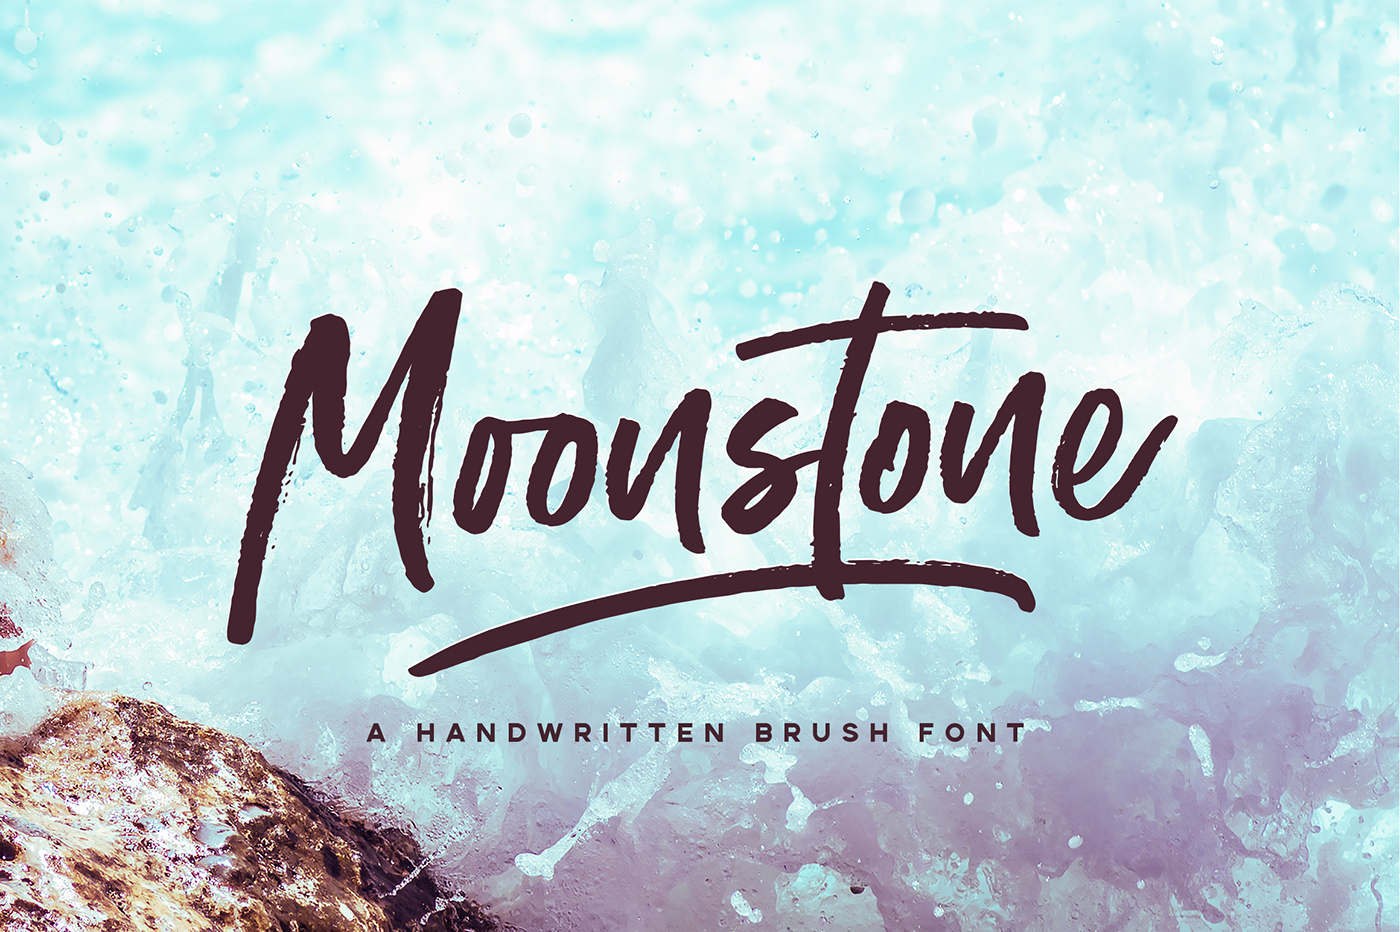 Moonstone Brush Font Is A Unique Handwritten Its Flow And Style Makes It Perfect To Use For Prints Logos Signatures Quotes Badges